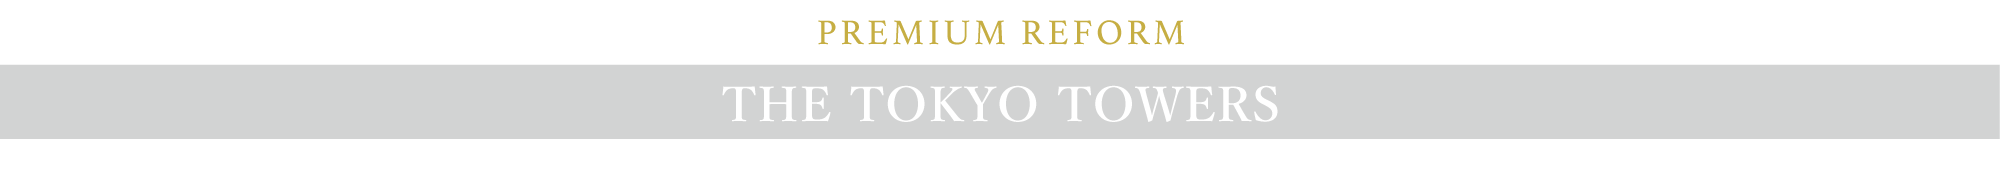 PREMIUM REFORM THE TOKYO TOWERS